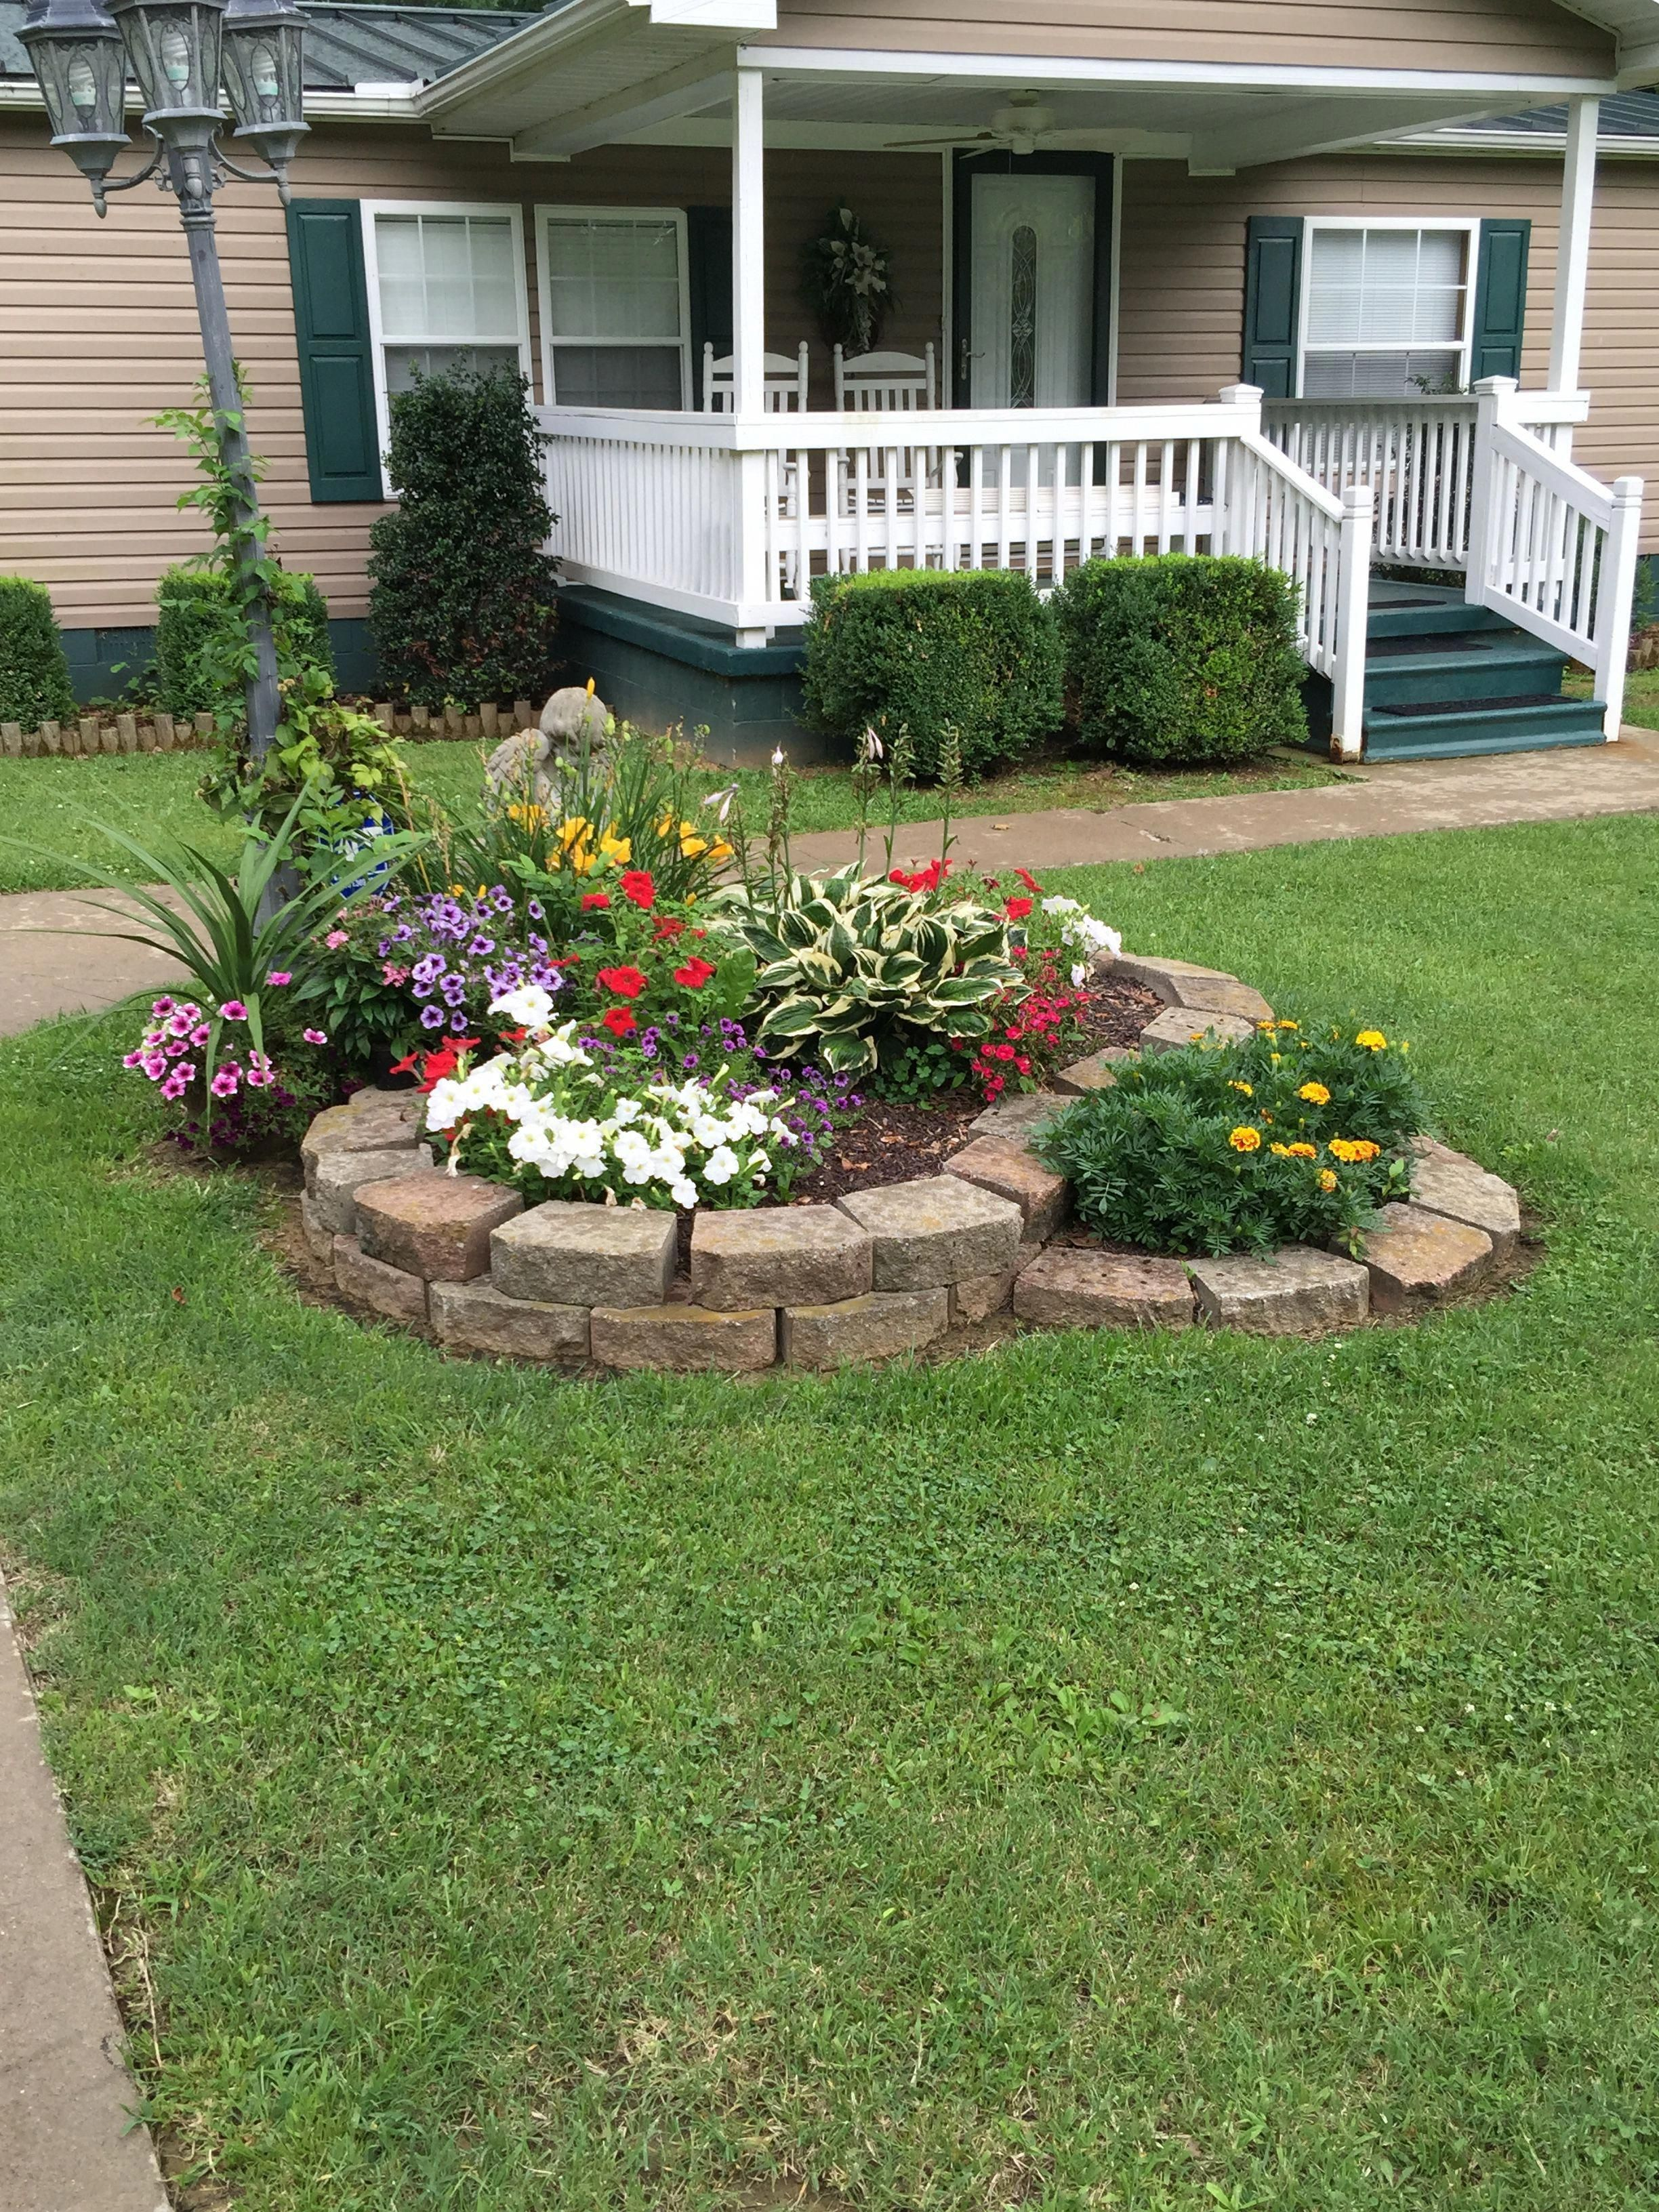 Gorgeous and pretty front yard garden landscaping ideas frontyardlanscape landscapinggardencosts also rh pinterest